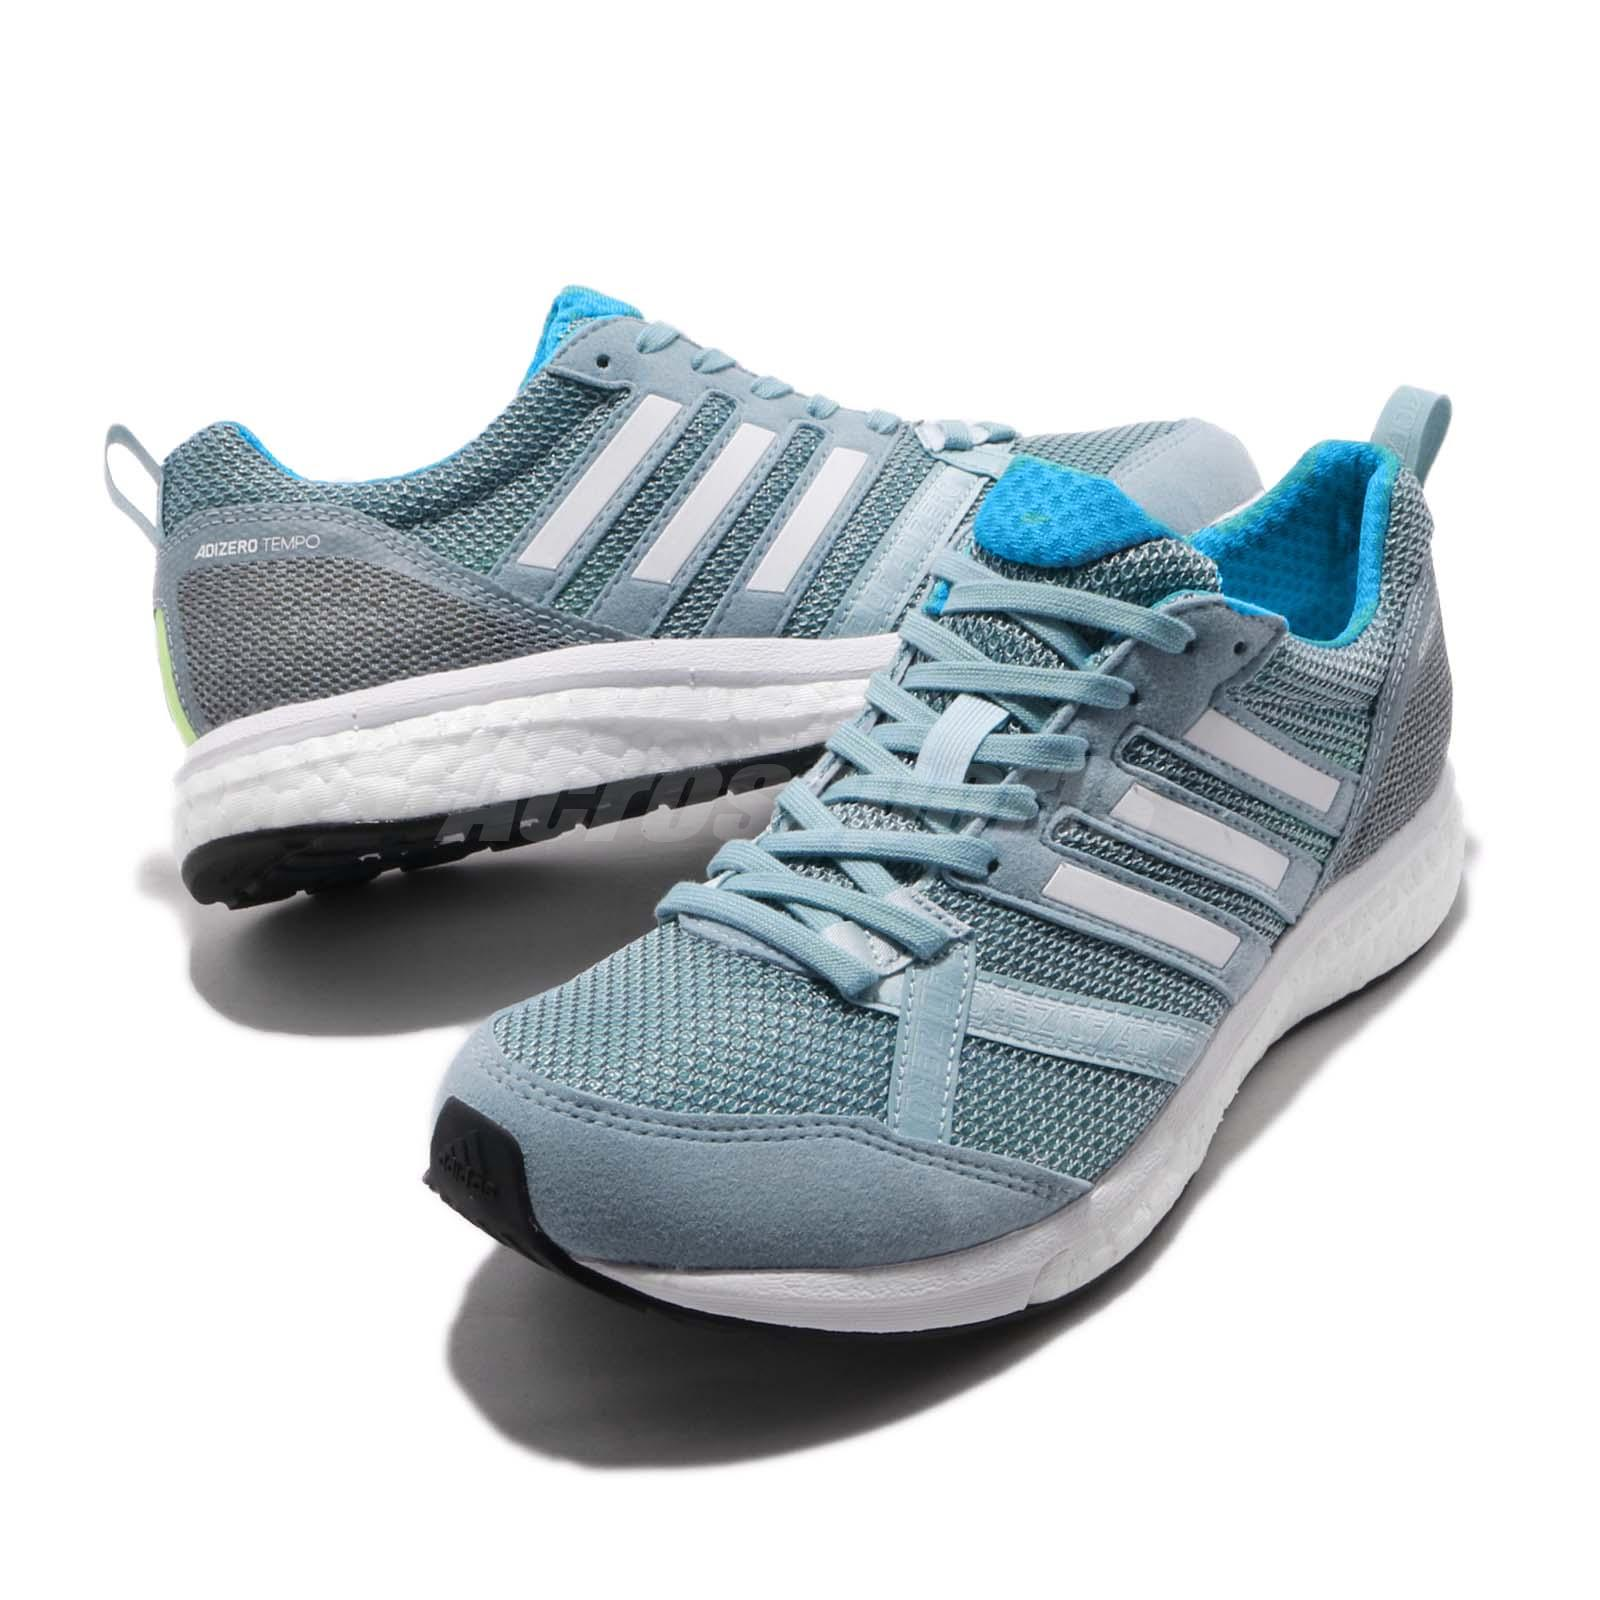 deb19187985 adidas Adizero Tempo 9 Boost Grey White Shock Cyan Women Running ...